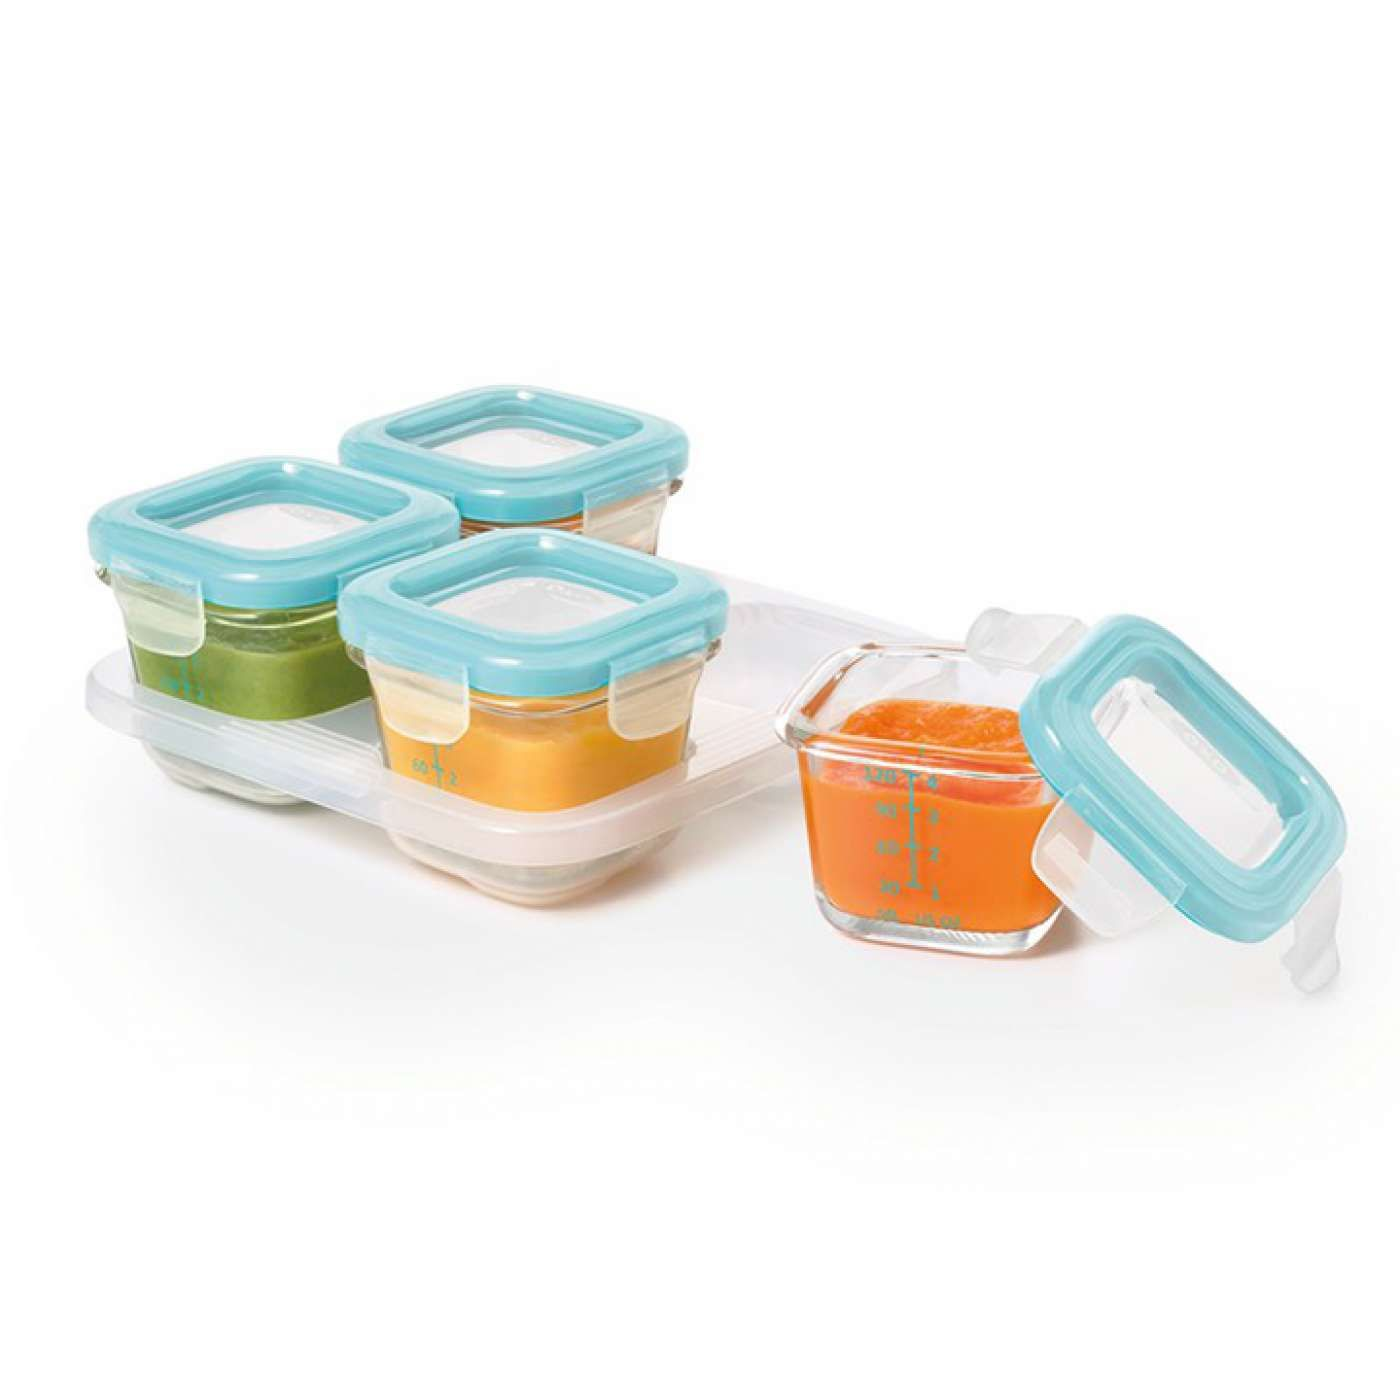 Oxo Tot Glass Baby Block Food Storage Containers Can Go From Freezer To Oven